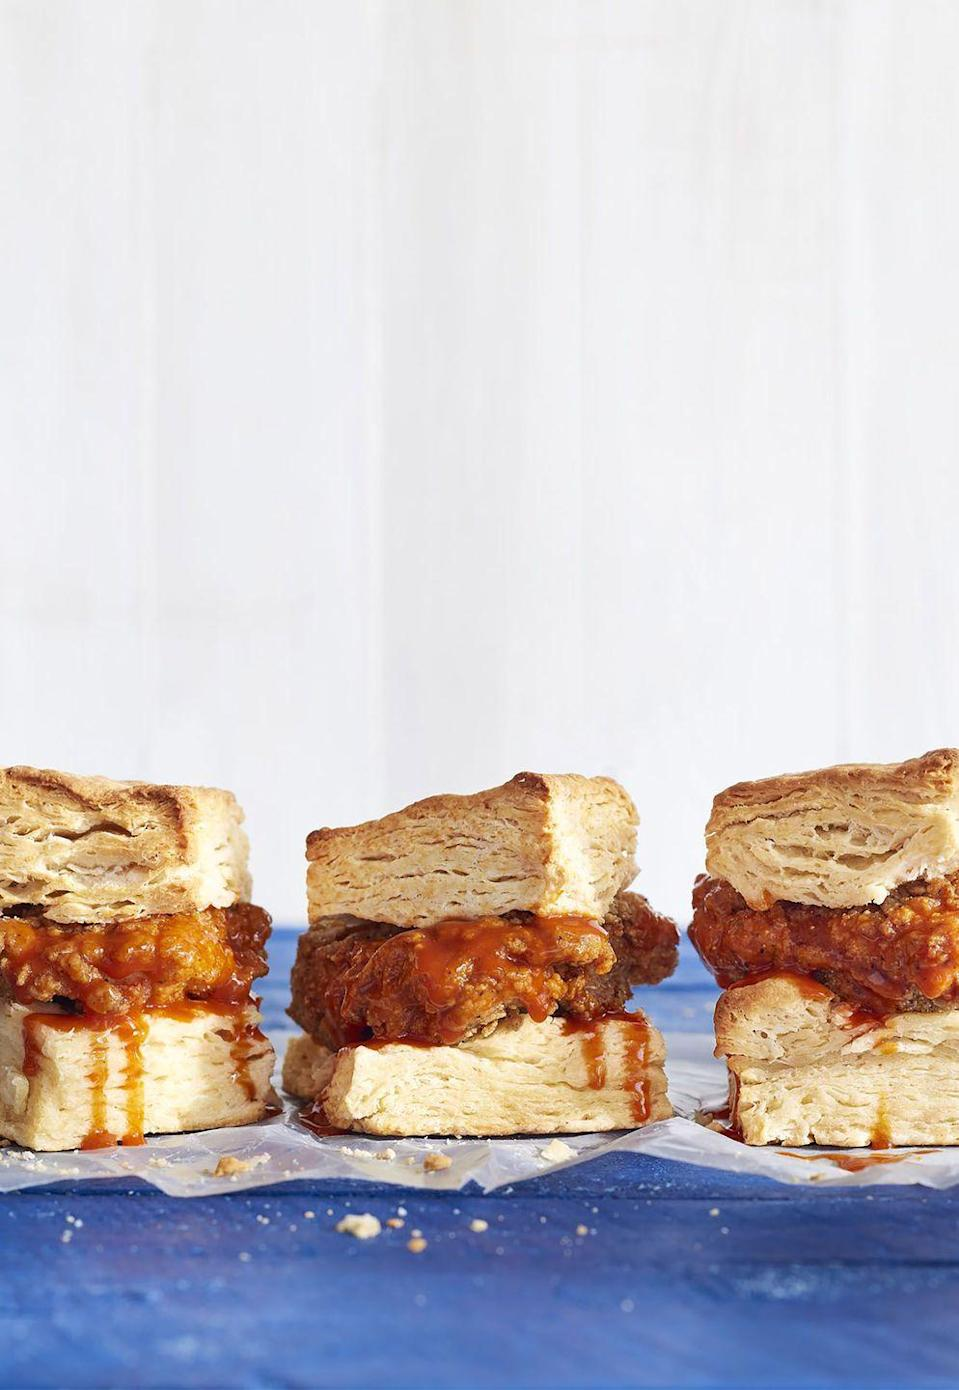 "<p>Tangy sweet and spicy chicken wedged between a buttery, flaky biscuit might just become your new staple.</p><p><strong><a href=""https://www.countryliving.com/food-drinks/recipes/a41656/mile-high-breakfast-chicken-biscuit-sandwiches-recipe/"" rel=""nofollow noopener"" target=""_blank"" data-ylk=""slk:Get the recipe."" class=""link rapid-noclick-resp"">Get the recipe.</a></strong></p>"